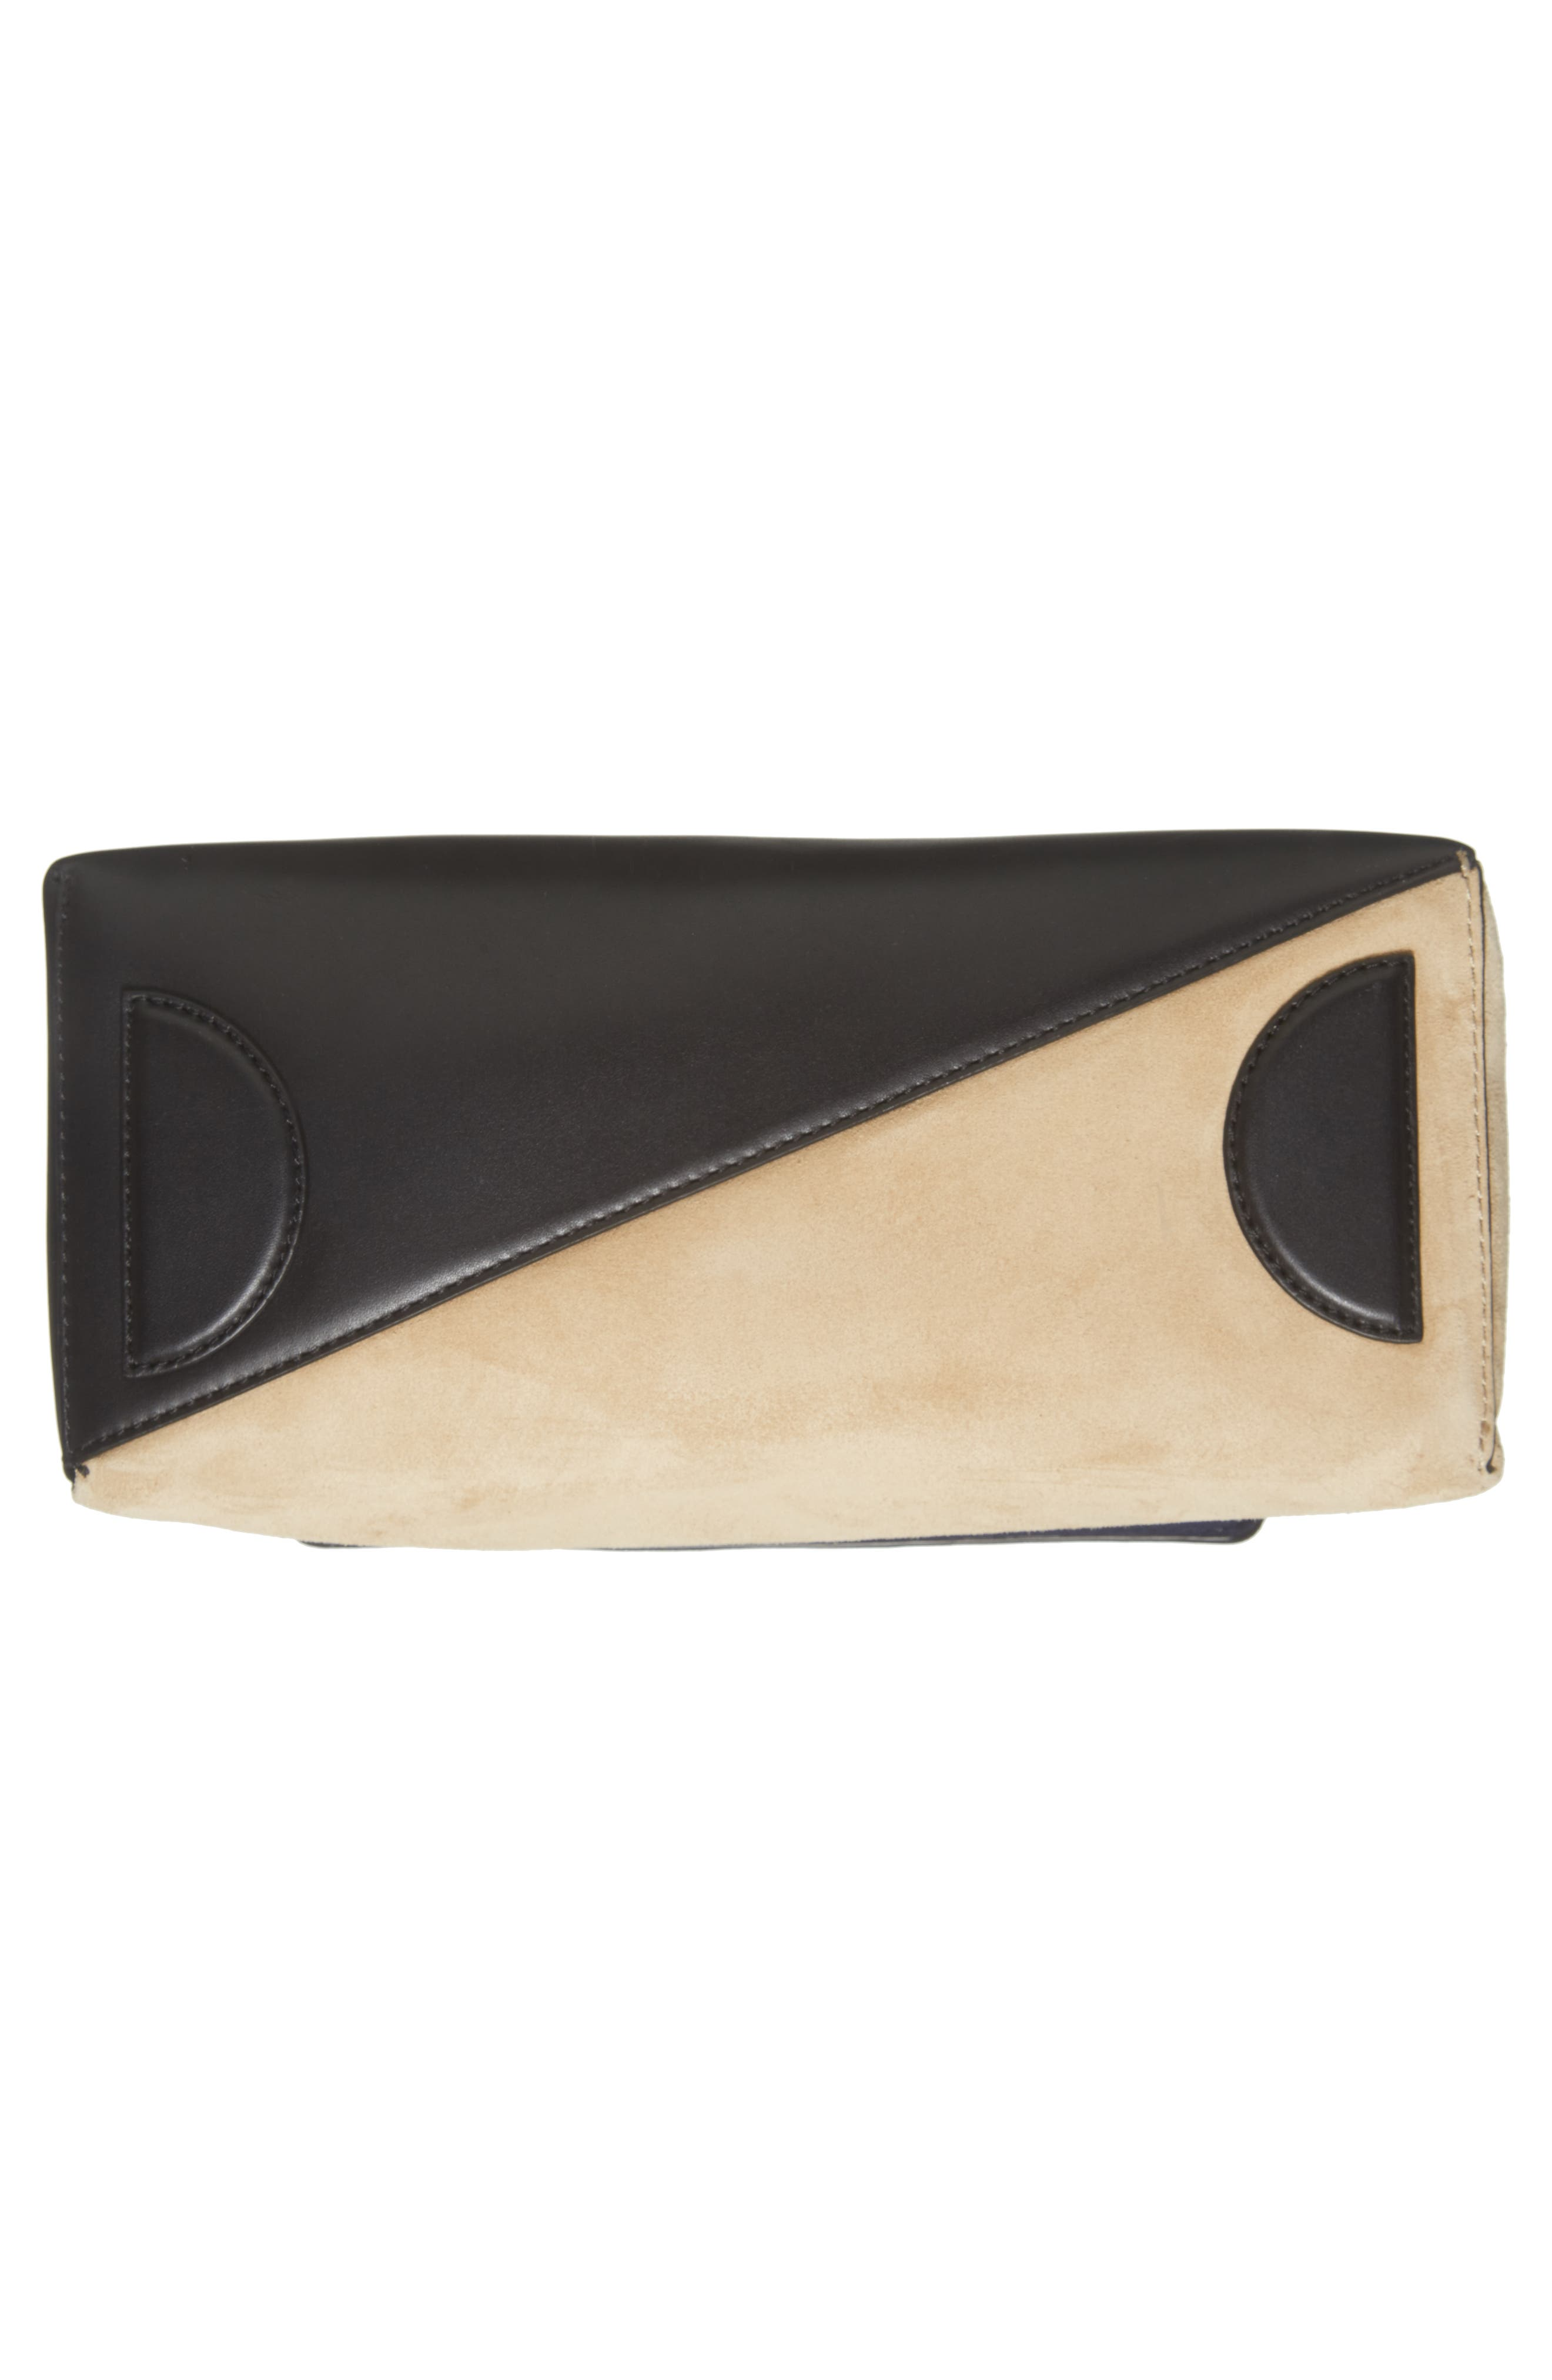 Small Leather & Suede Satchel,                             Alternate thumbnail 6, color,